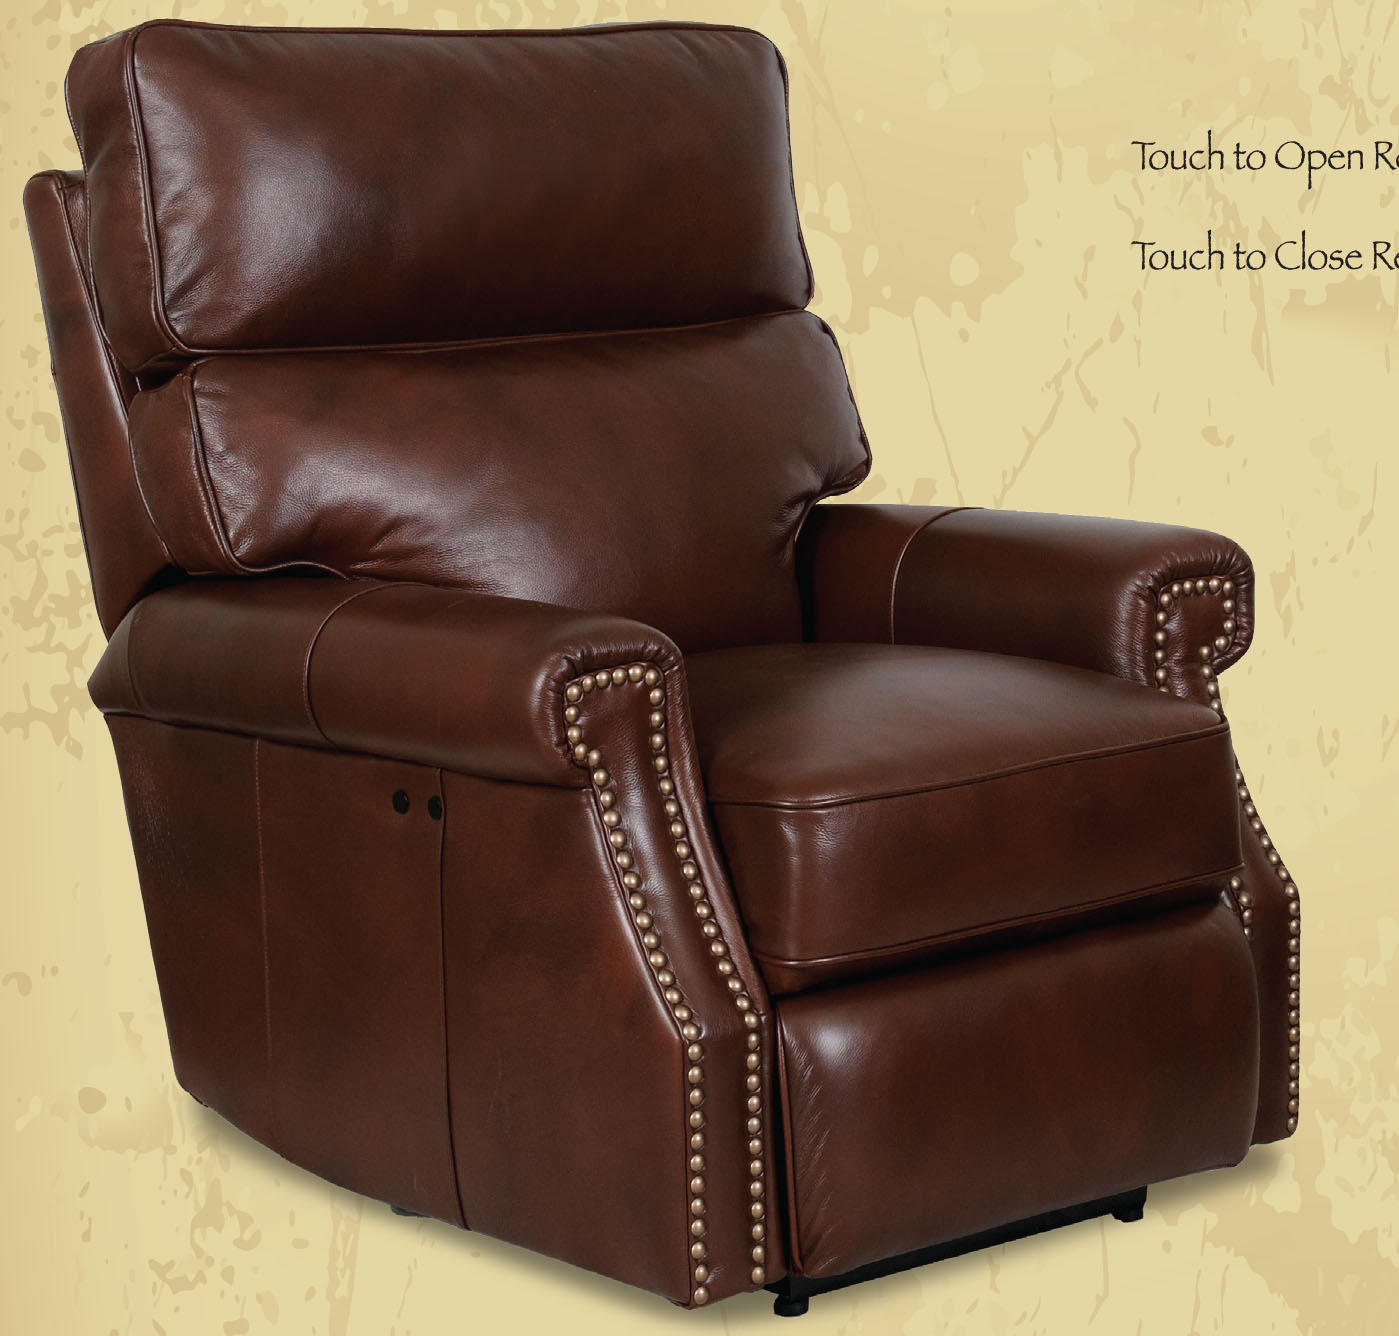 recliner chair leather purple dining cushions barcalounger lochmere ii